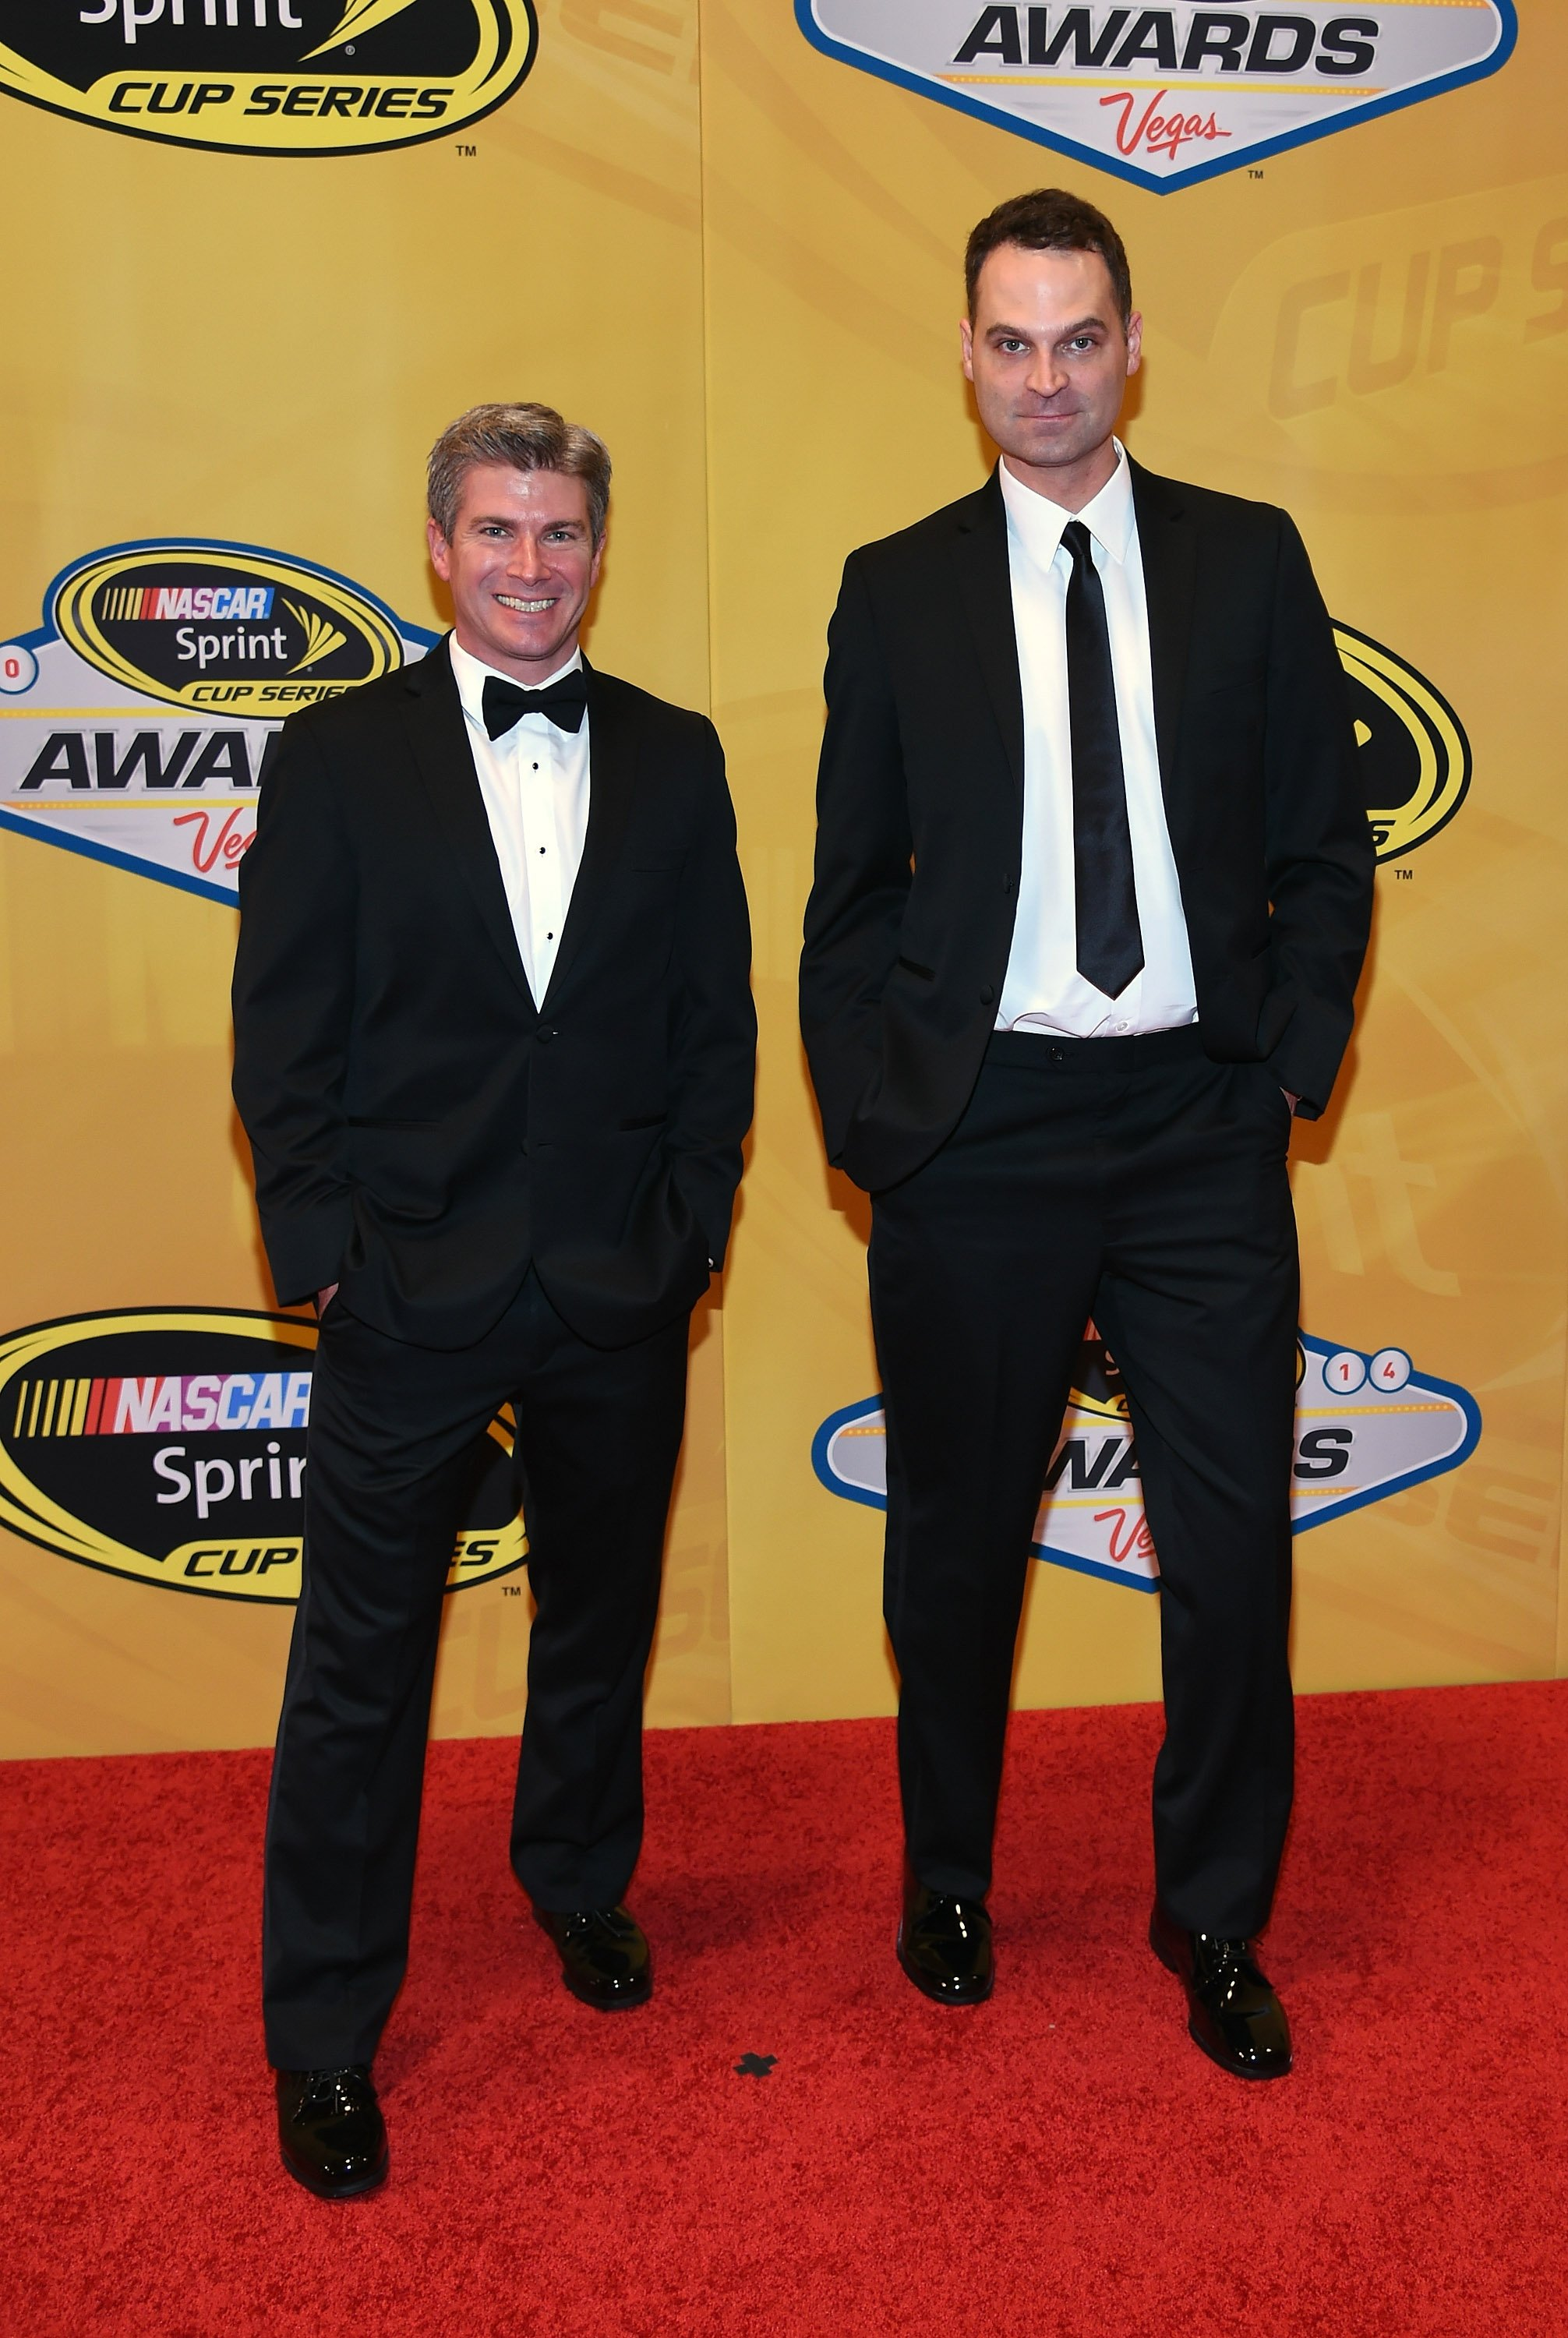 Dan O'Toole and Jay Onrait at the NASCAR Sprint Cup Series Awards on December 5, 2014, in Las Vegas, Nevada | Photo: Ethan Miller/Getty Images